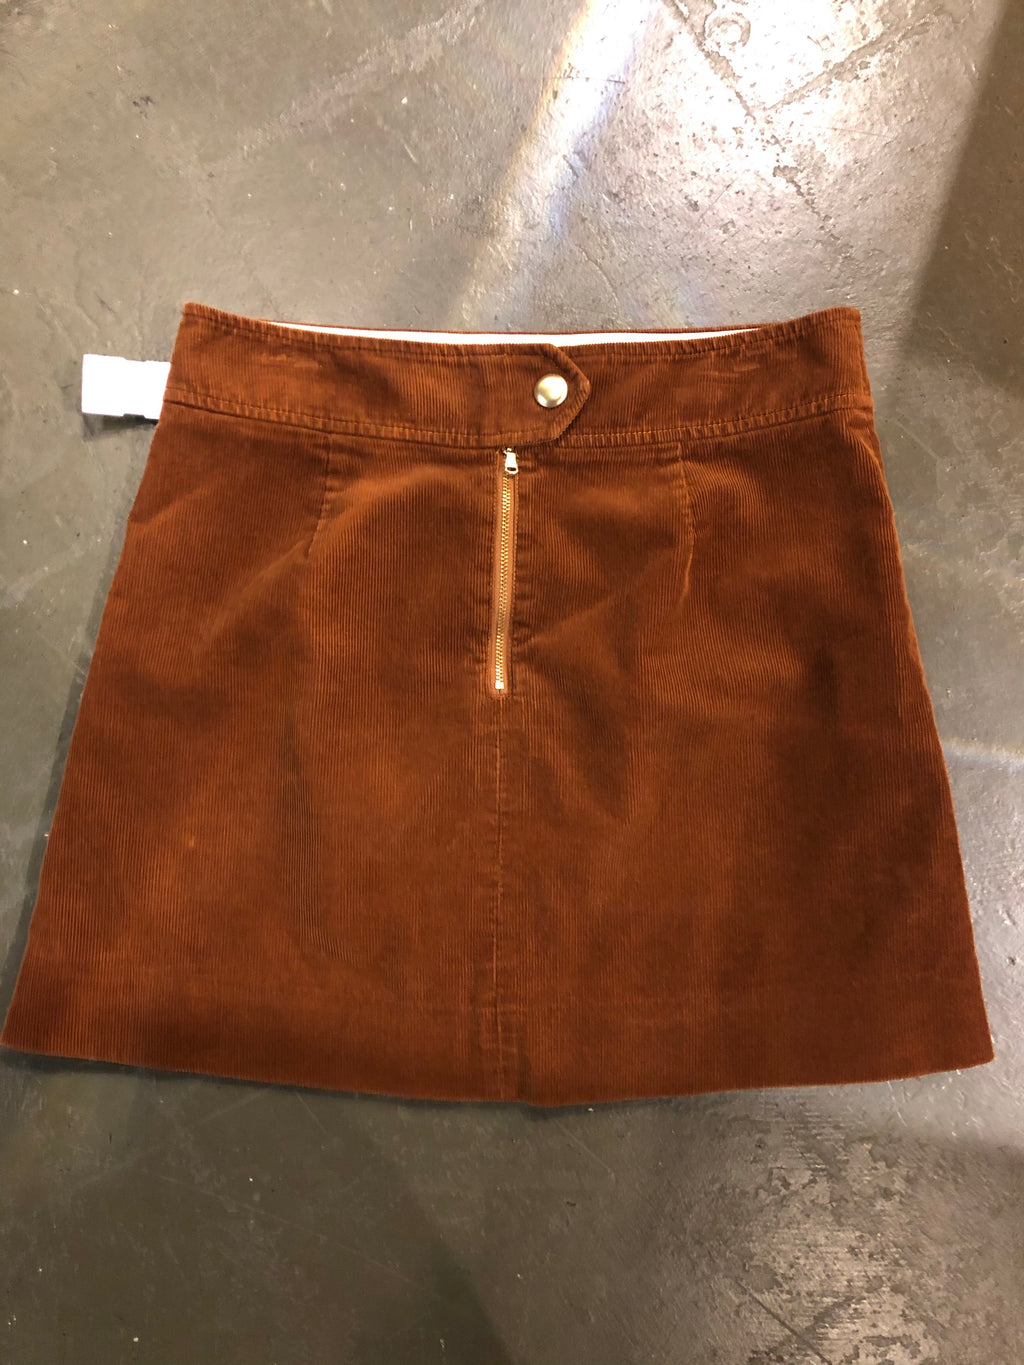 J. Crew Brown skirt sz 8